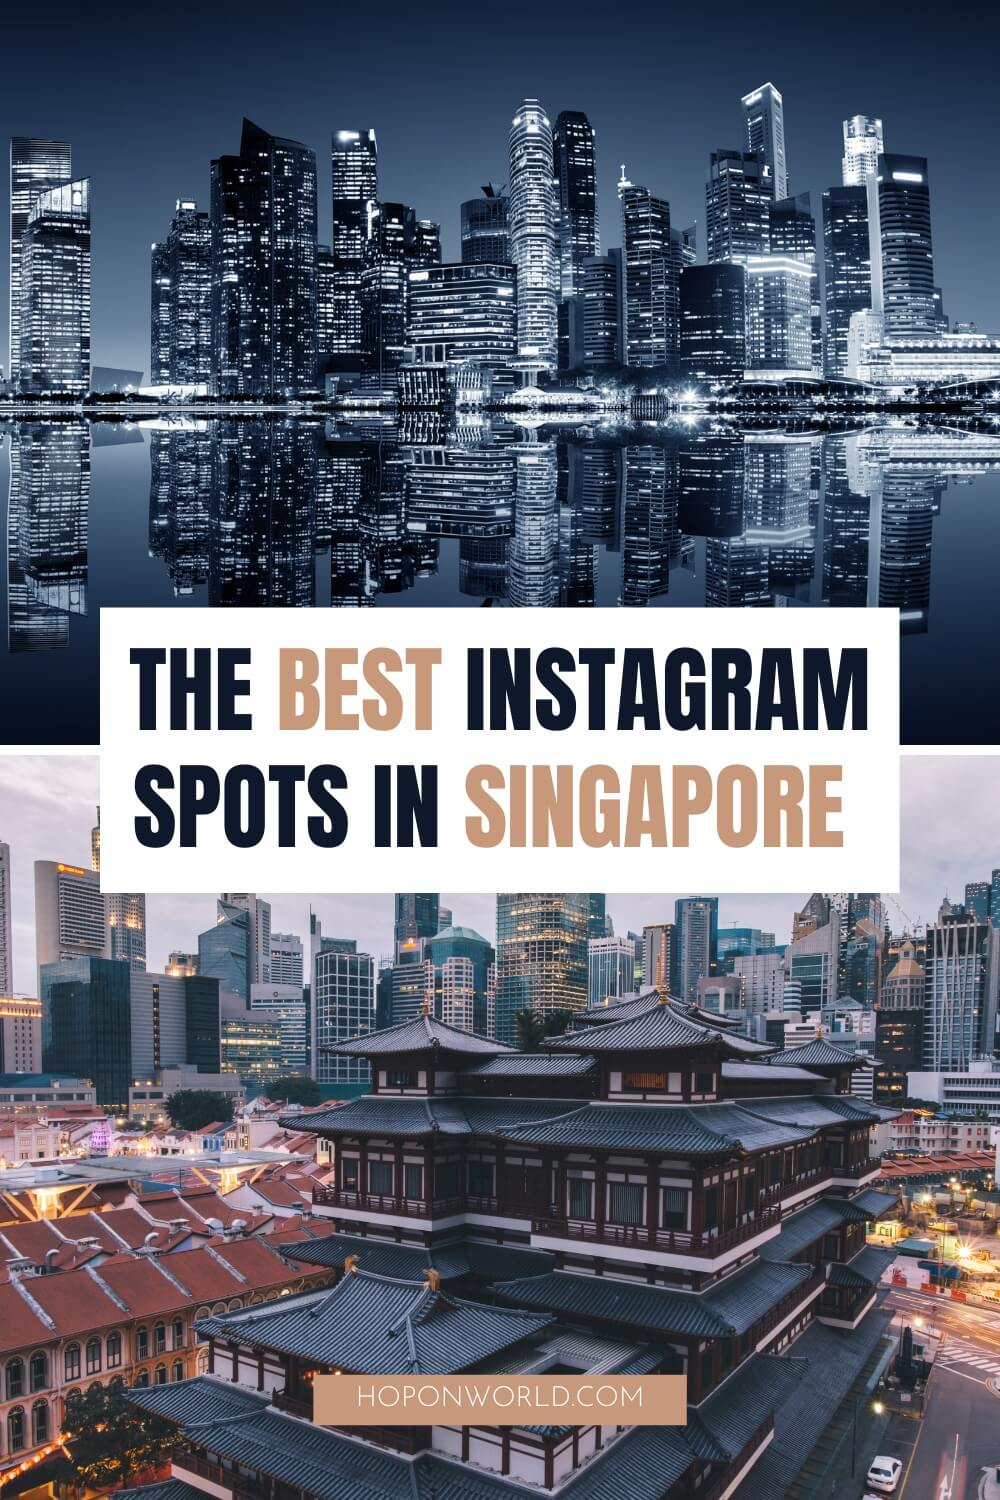 Looking for the most Instagrammable places in Singapore? This guide unpacks 16 of the best Singapore Instagram spots you don't want to miss, and includes tons of top tips to help you find the best photo spots in the Lion City. singapore photography | singapore photography travel | singapore instagram spots | most instagrammable places singapore | beautiful places singapore | singapore travel places | singapore places to visit